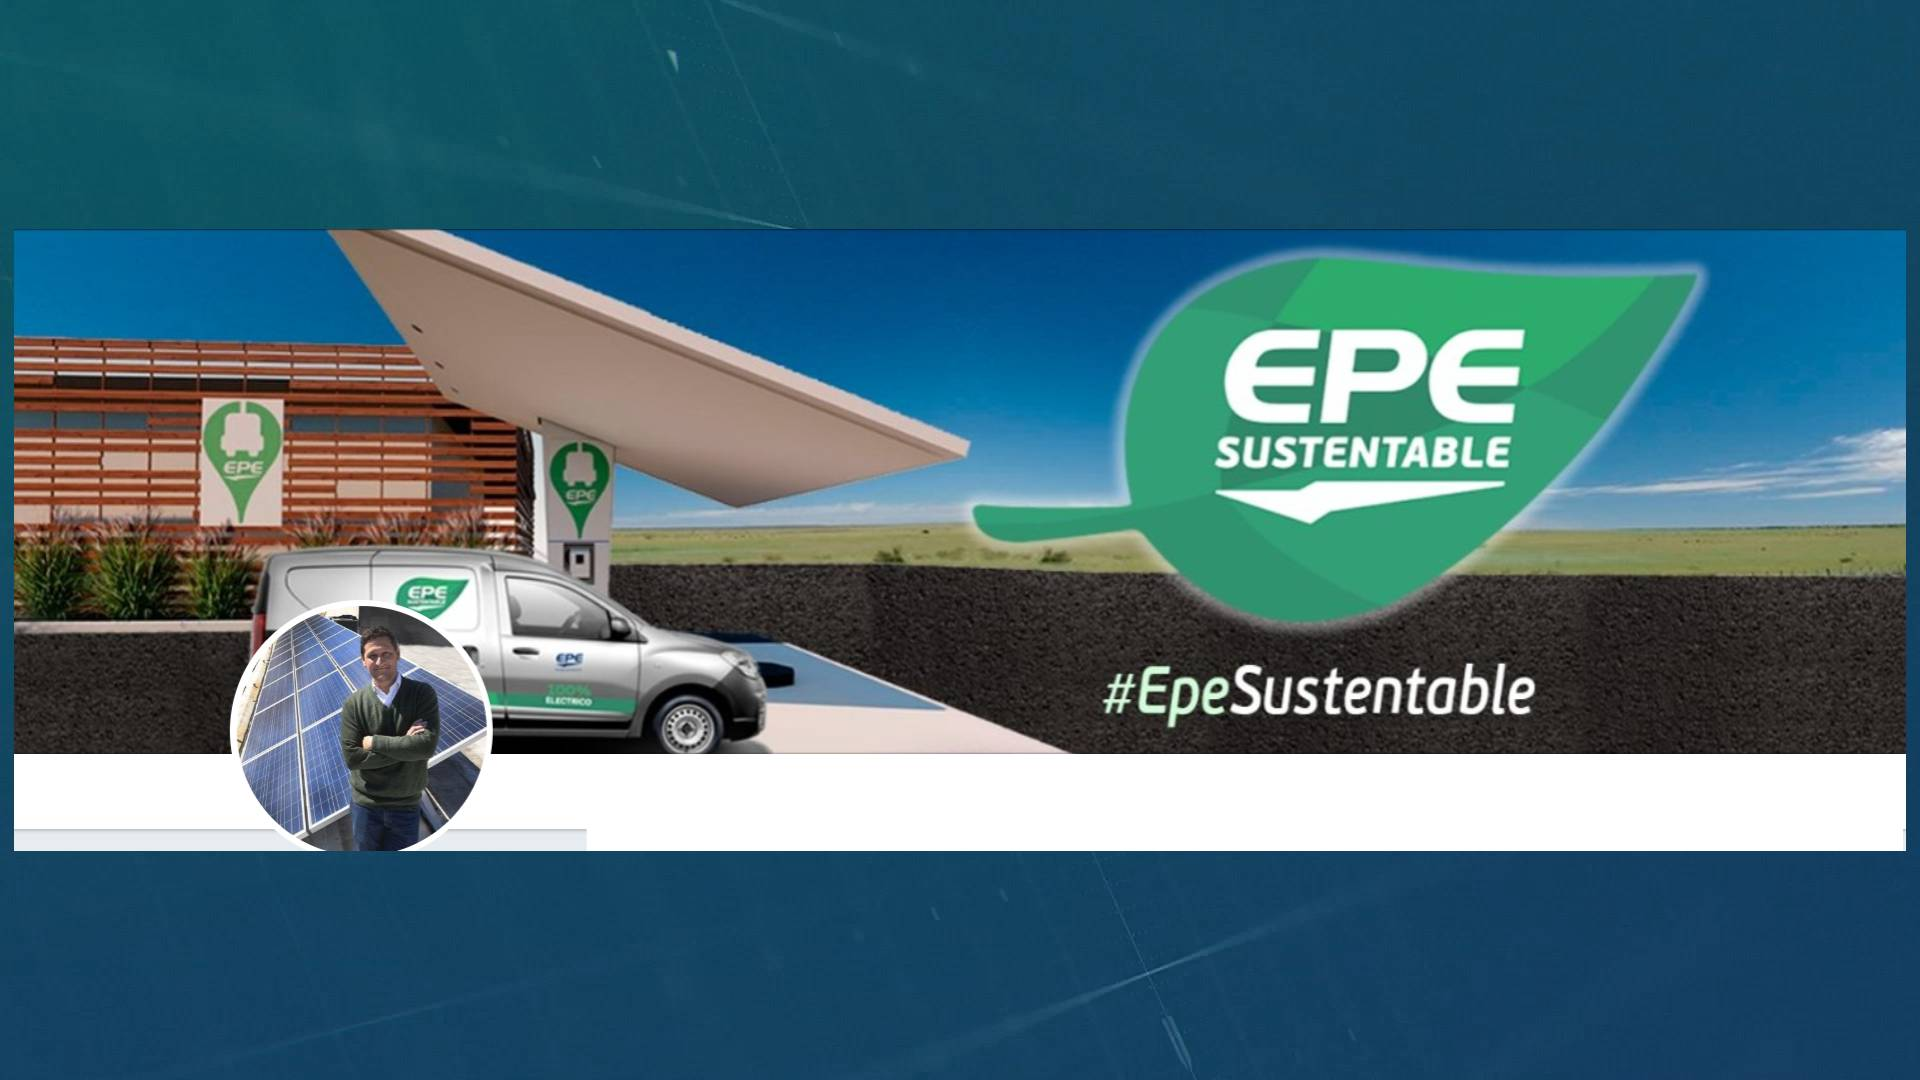 EPE sustentable